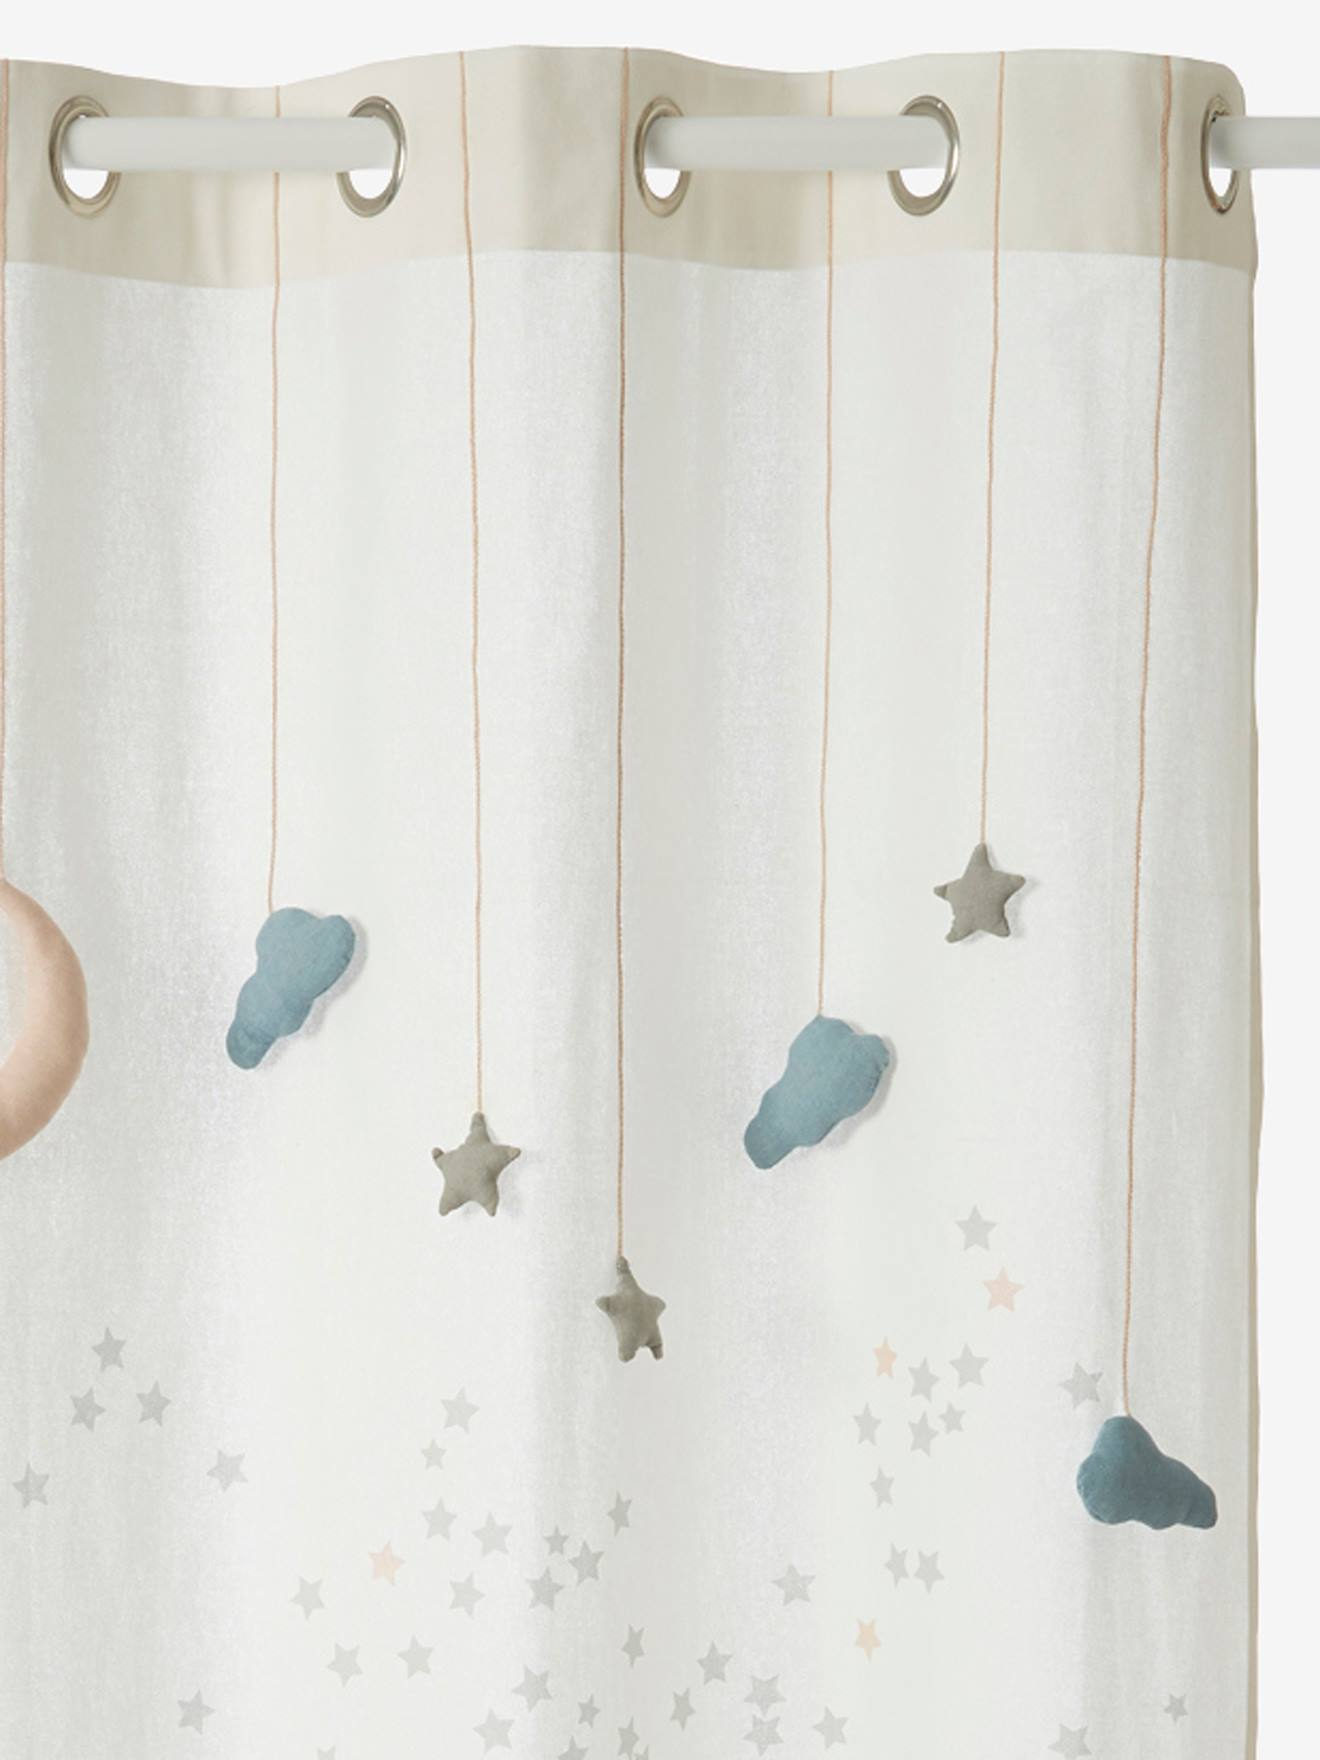 Sheer Curtain Like A Star Theme White Light Solid With Design Bedding Decor